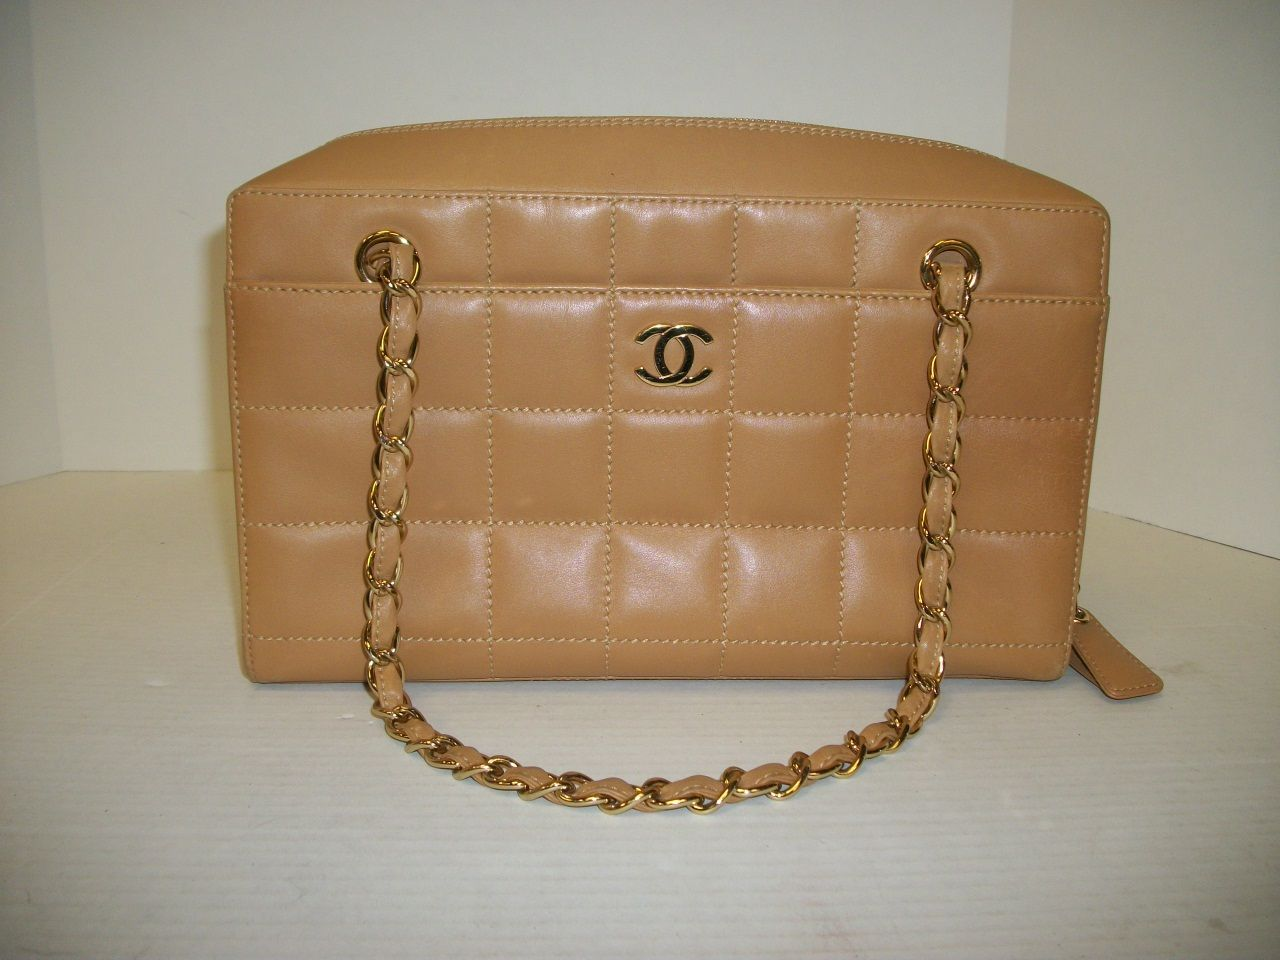 10a84d2e94f5 Keeks Buy Sell Designer Handbags - Chanel Camel Quilted Leather Chain  Shoulder, $1,229.99 (http